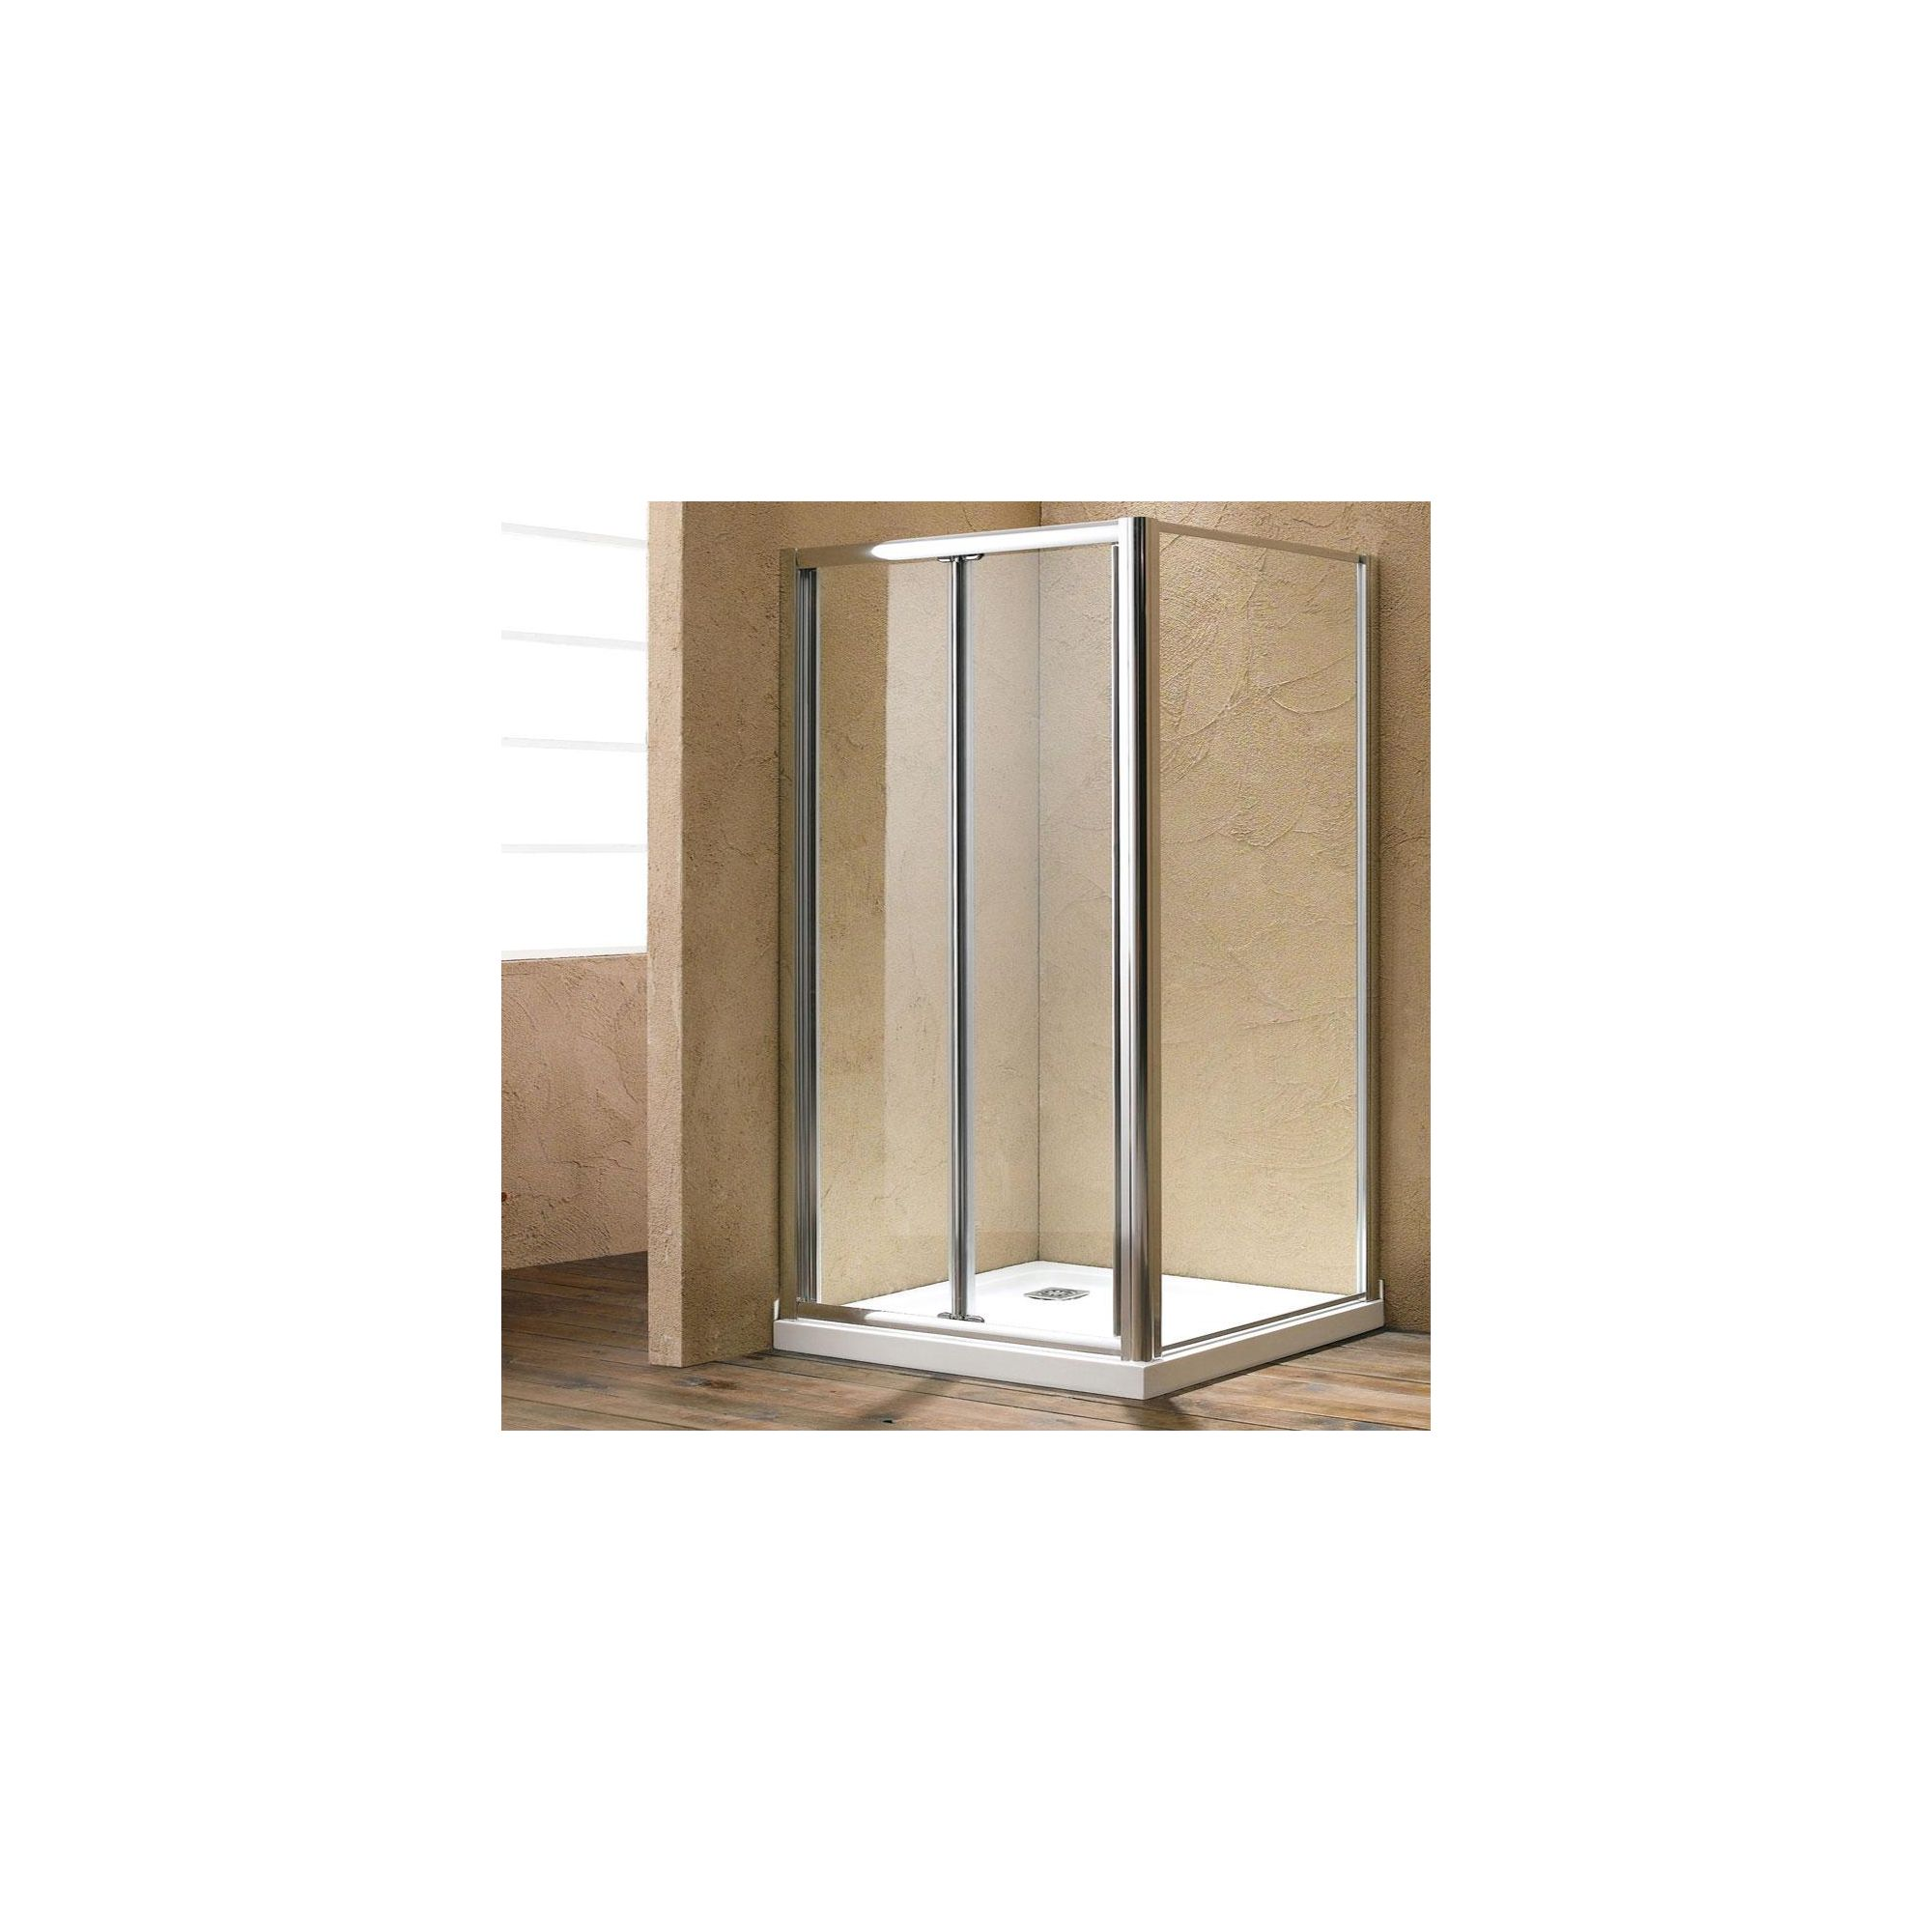 Duchy Style Twin Bi-Fold Door Shower Enclosure, 1000mm x 700mm, 6mm Glass, Low Profile Tray at Tesco Direct